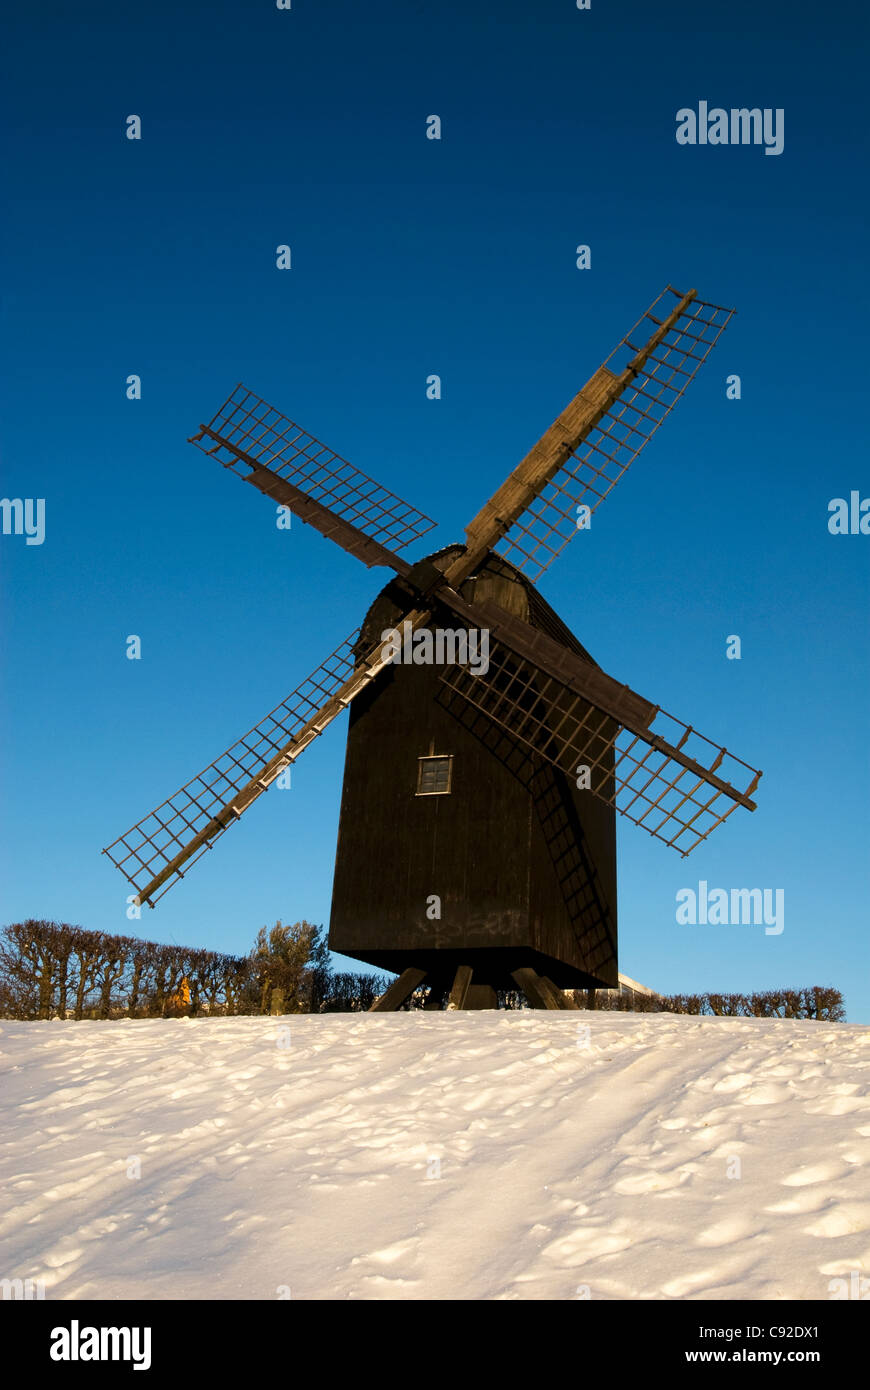 Aarhus Old Mill is one of the sights of the city, on the hill above Den Gamle By. Stock Photo